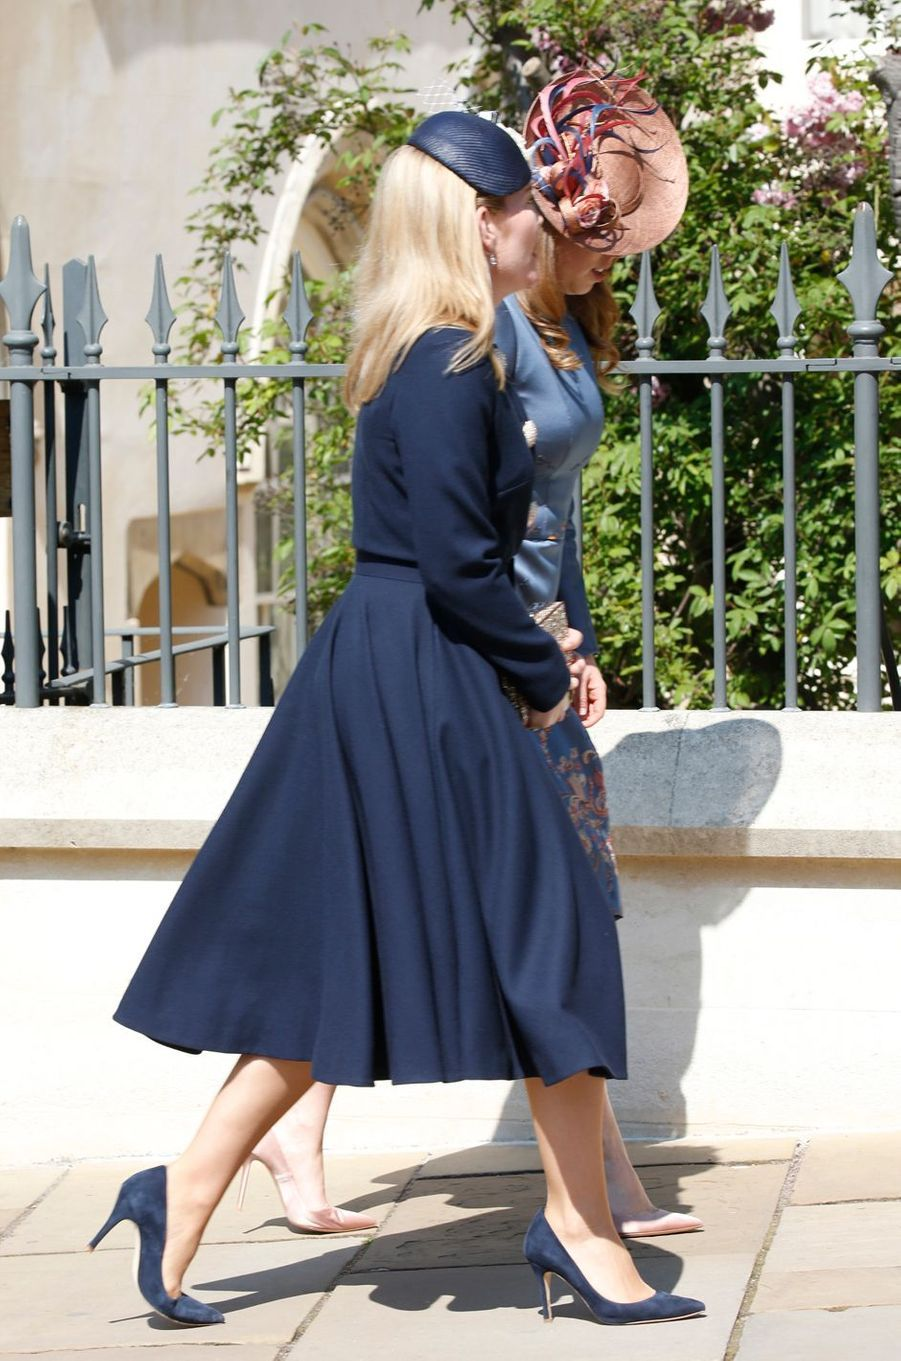 Autumn Phillips et la princesse Beatrice d'York à Windsor, le 21 avril 2019